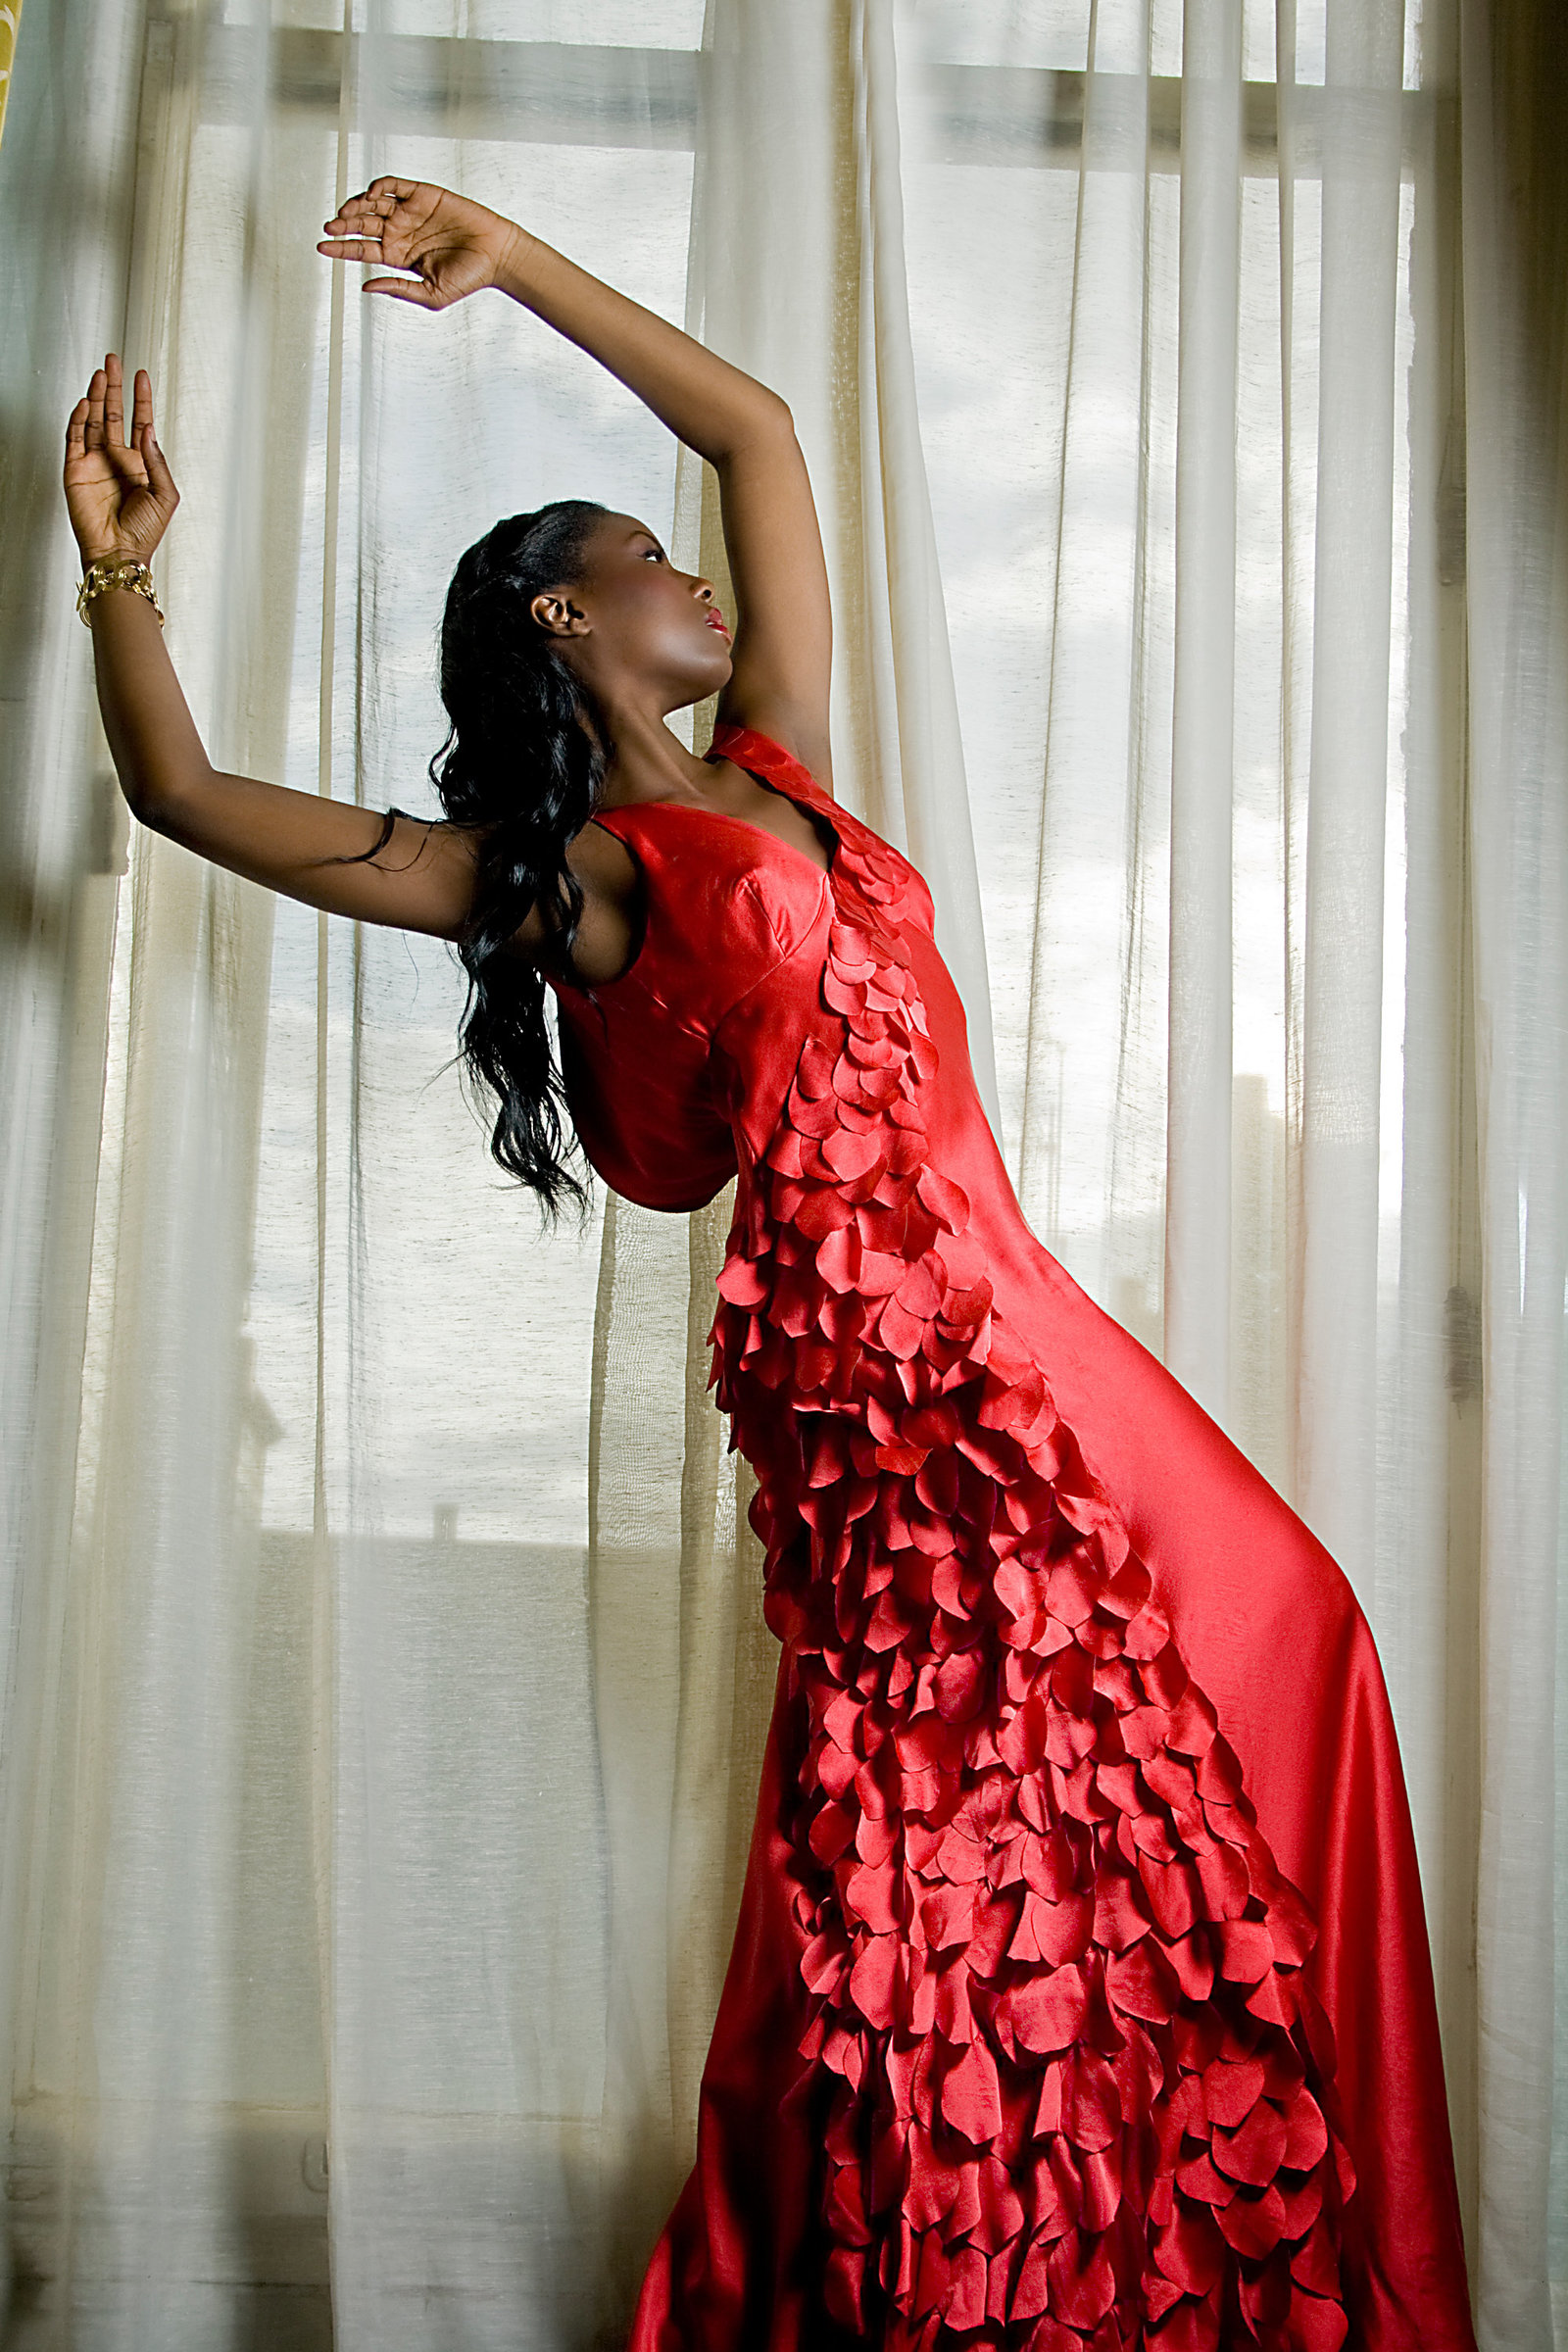 Scarlet_silk_satin_petal_dress_JoanneFlemingDesign_PicCristinaCarinhas